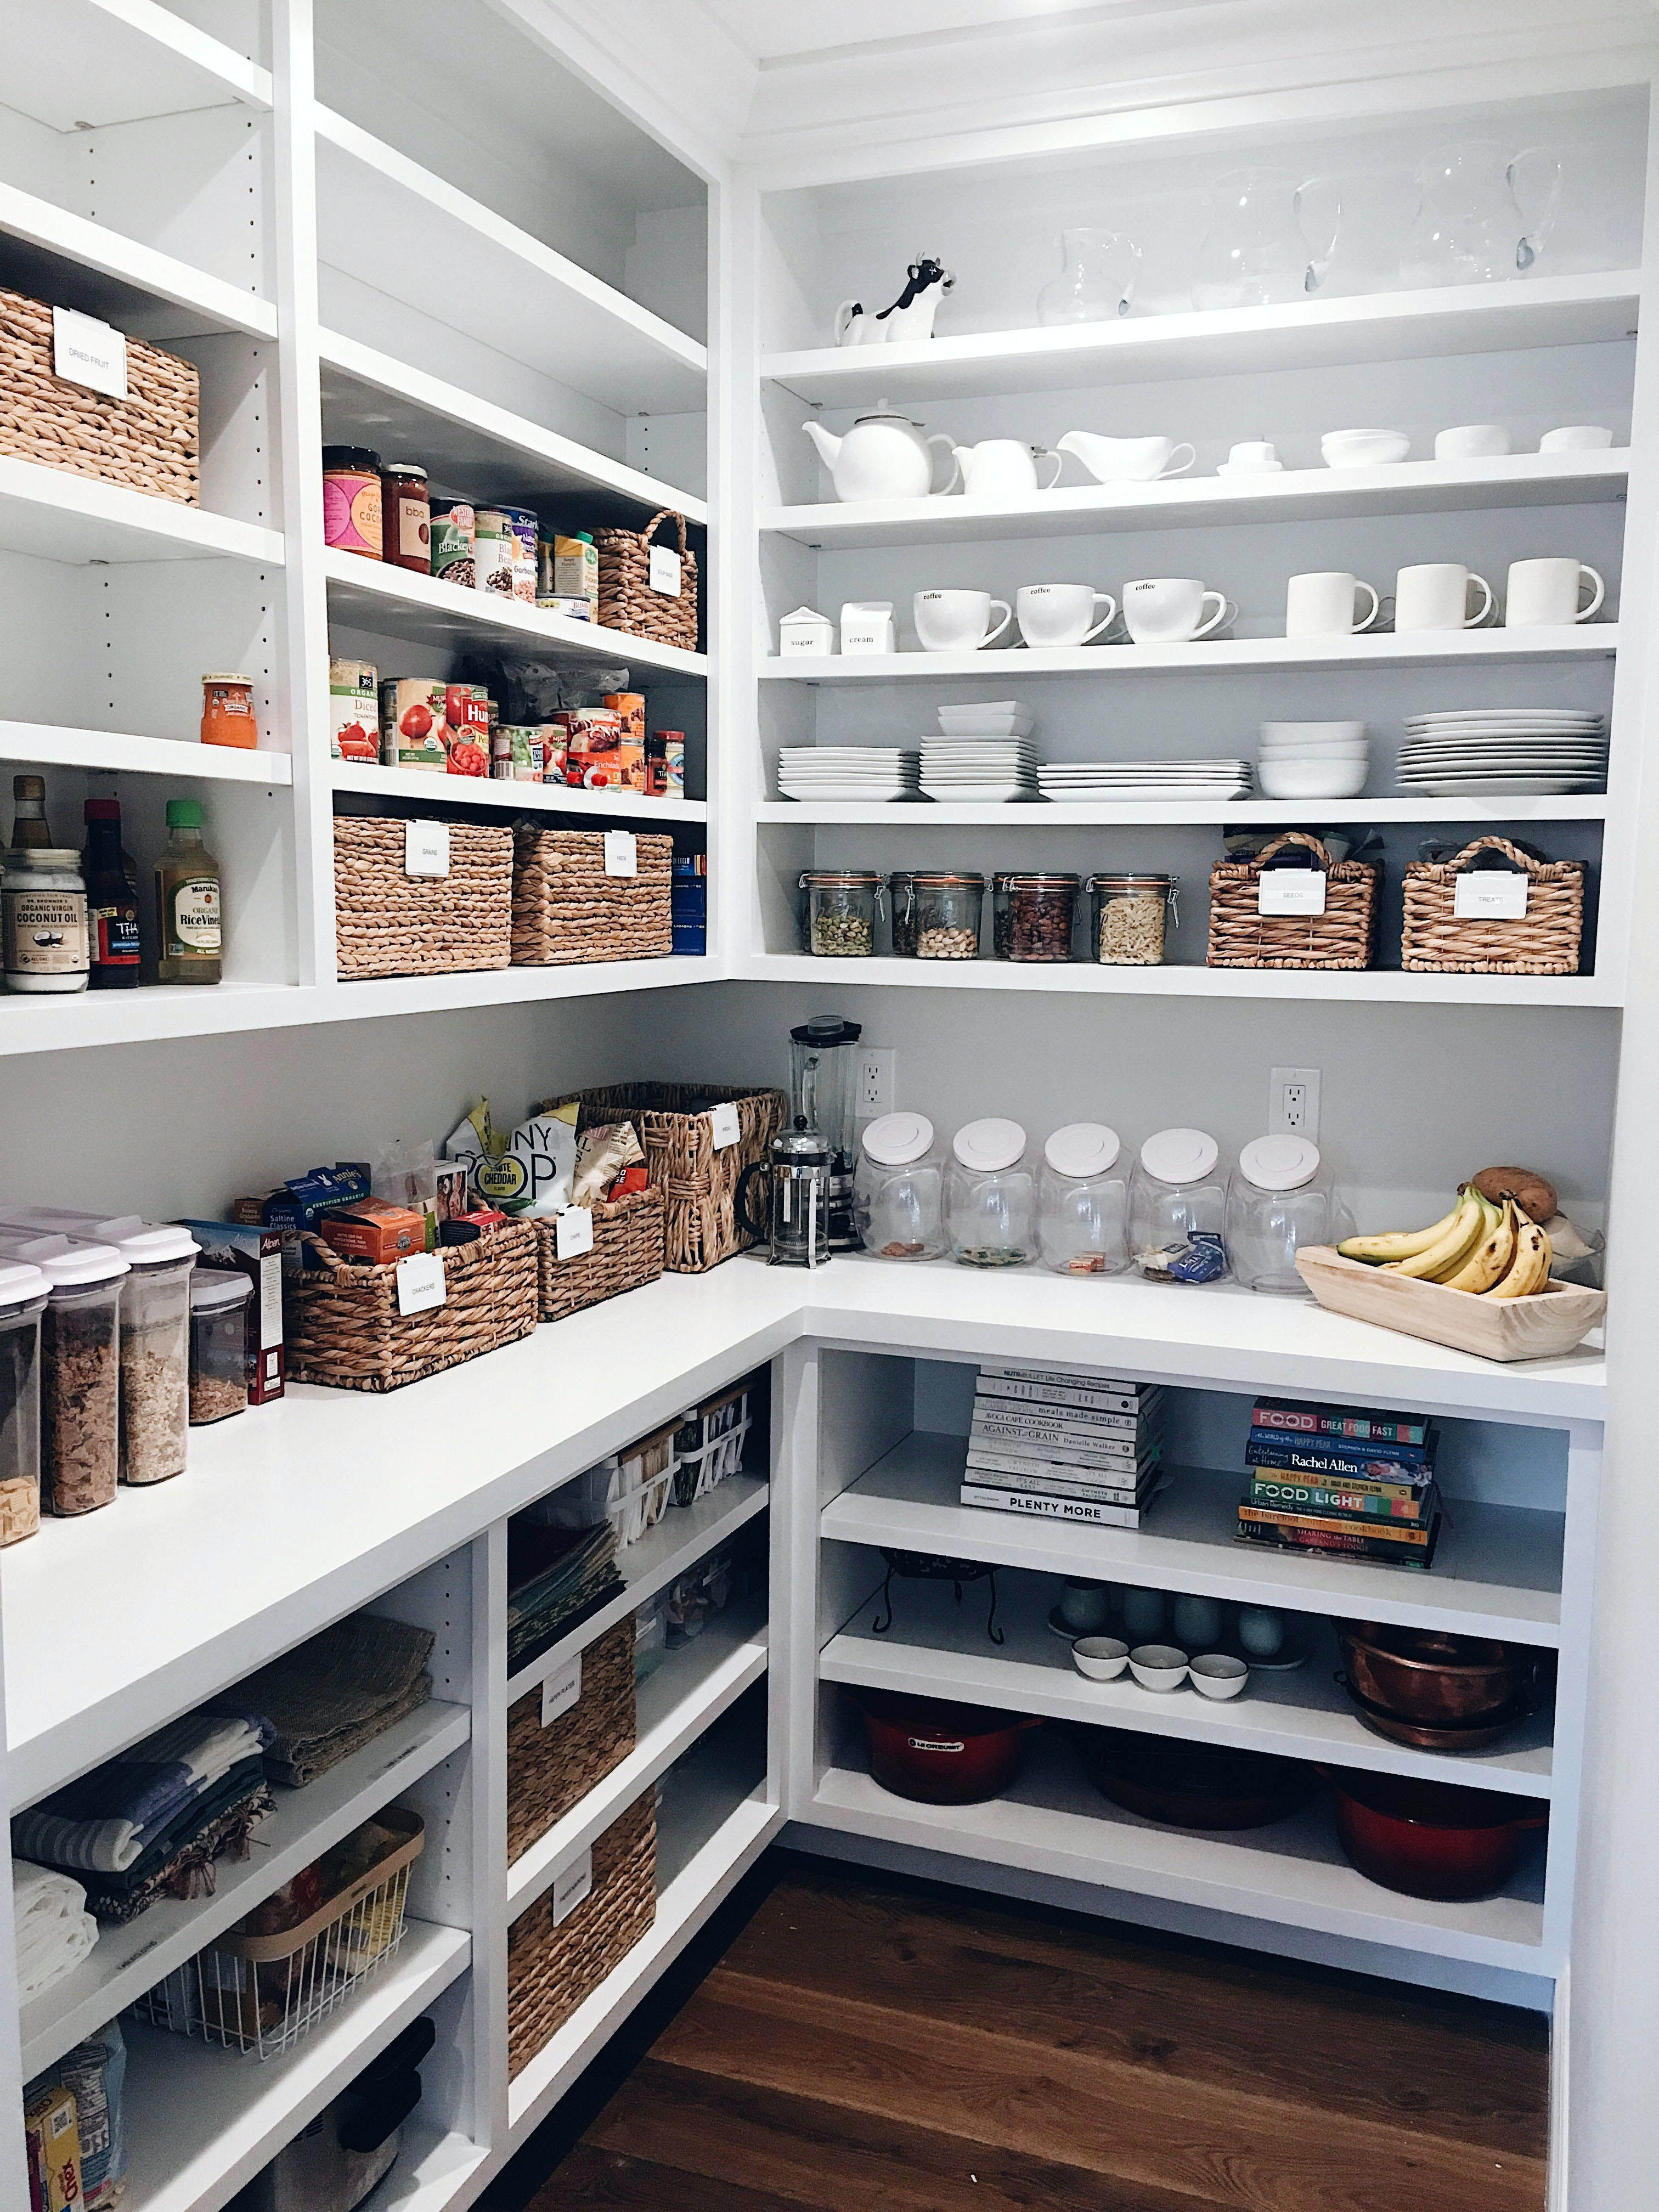 Amazing Pantry Shelving Pinterest Only On Planetdecors Com Kitchen Pantry Design Pantry Decor Kitchen Cabinet Remodel